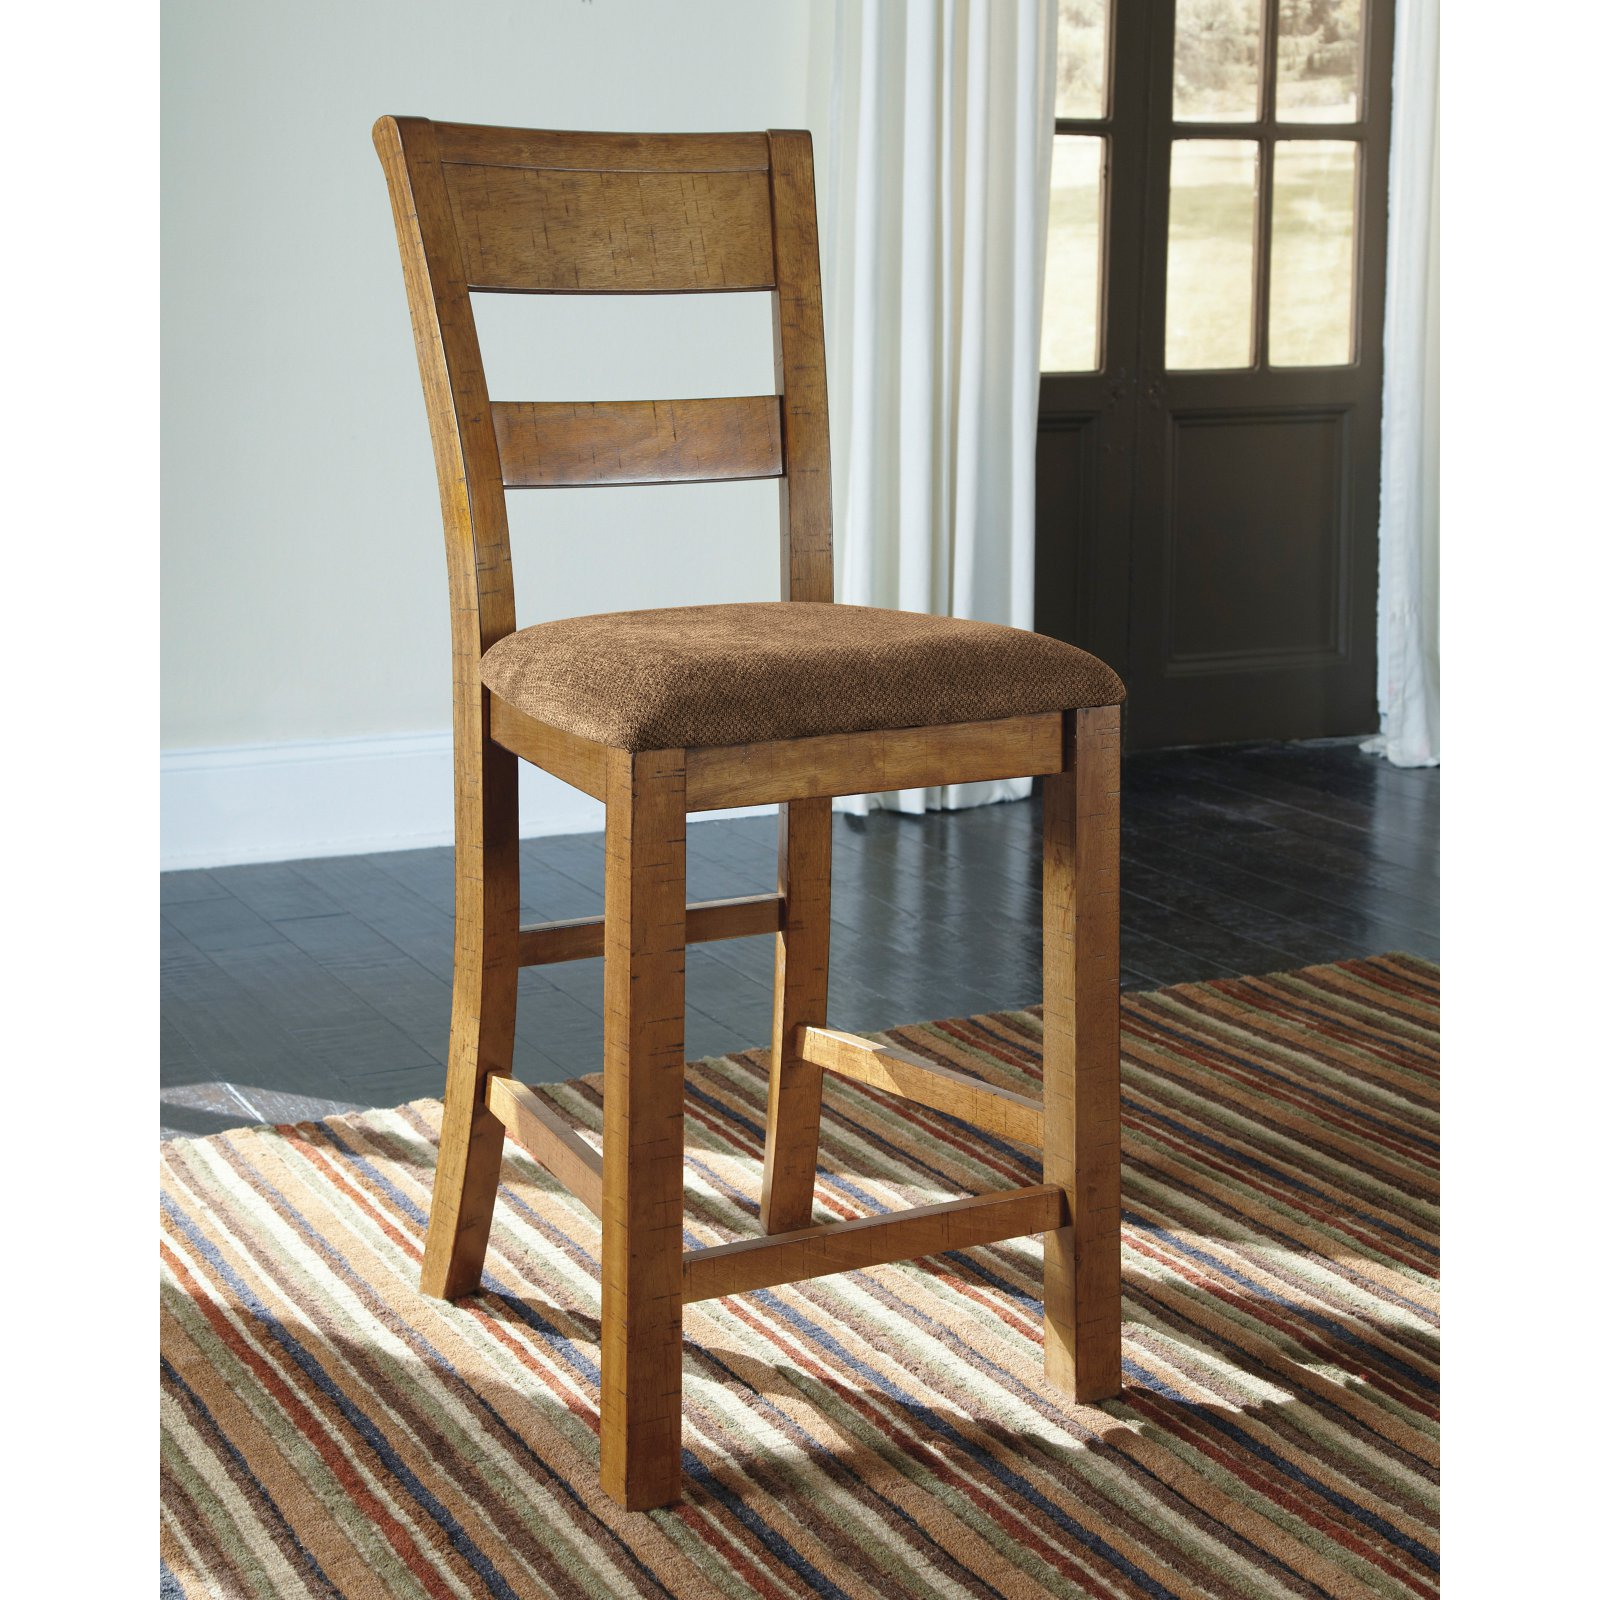 Signature Design by Ashley Krinden Counter Height Dining Chairs - Set of 2